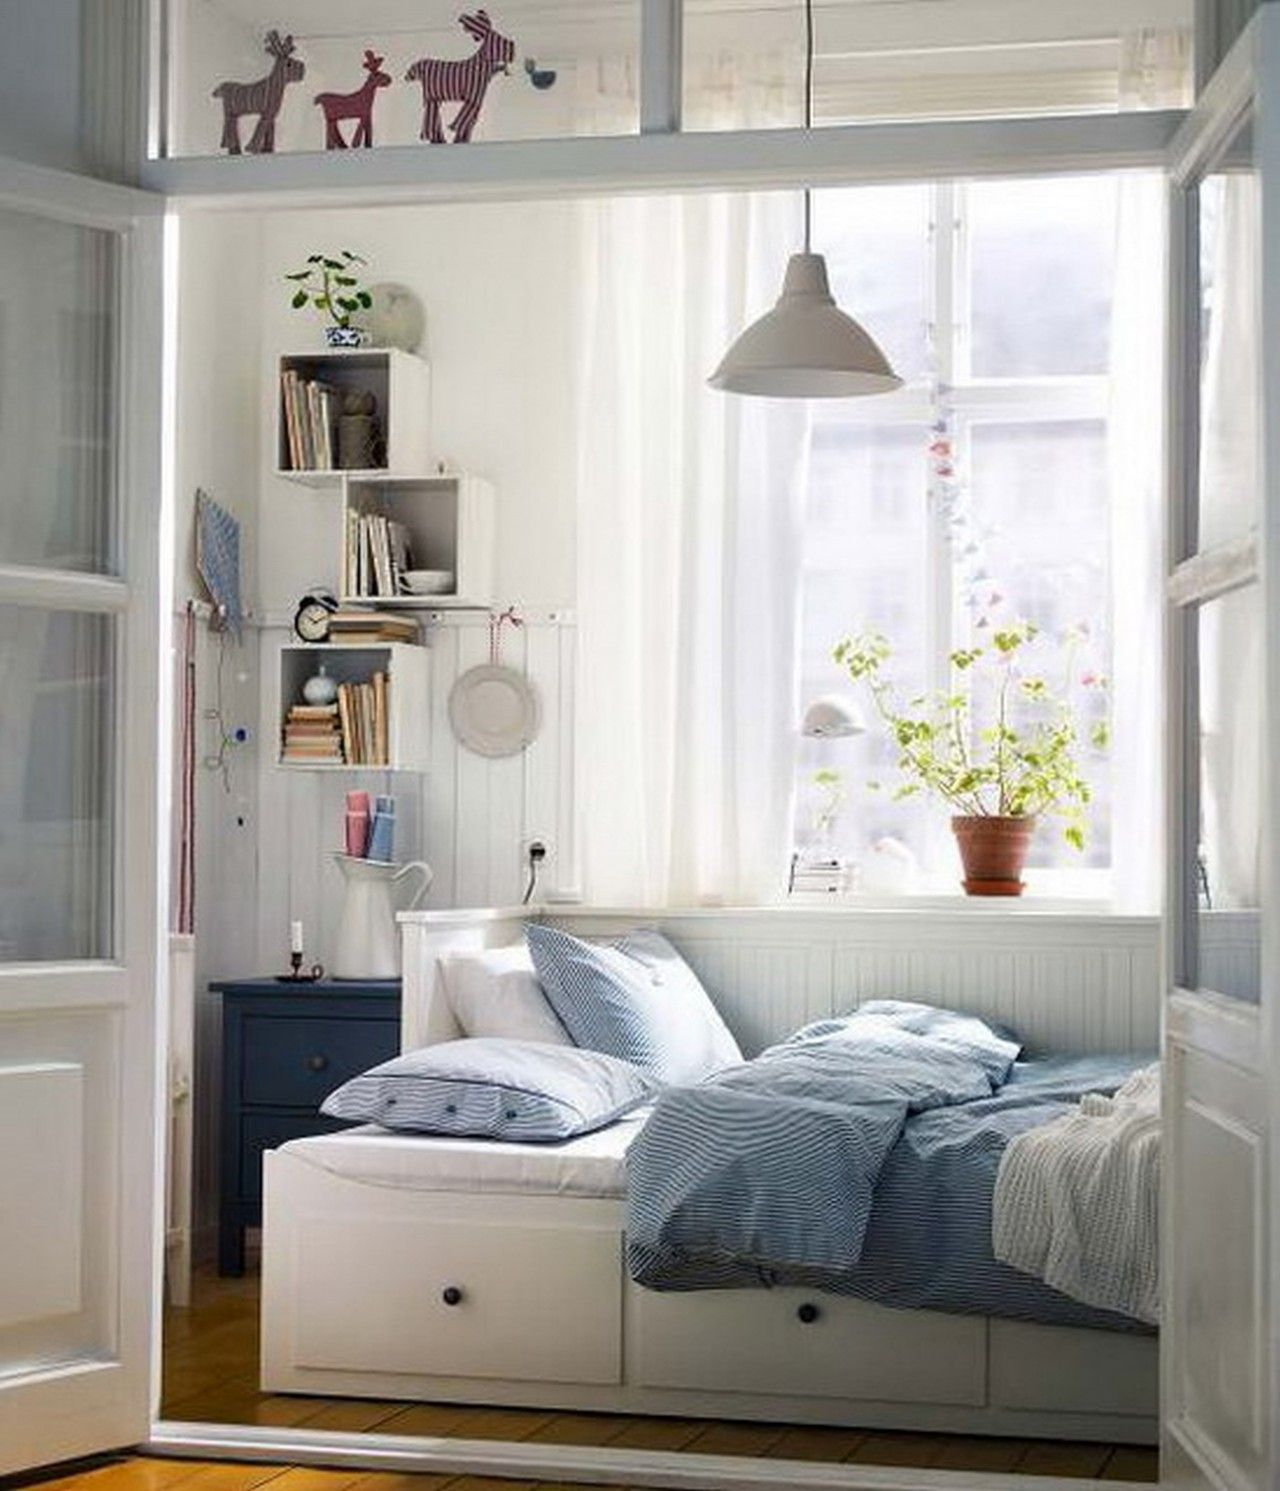 Bedroom Door Designs Tumblr Glbeehvv | Bedroom Ideas Tumblr ...